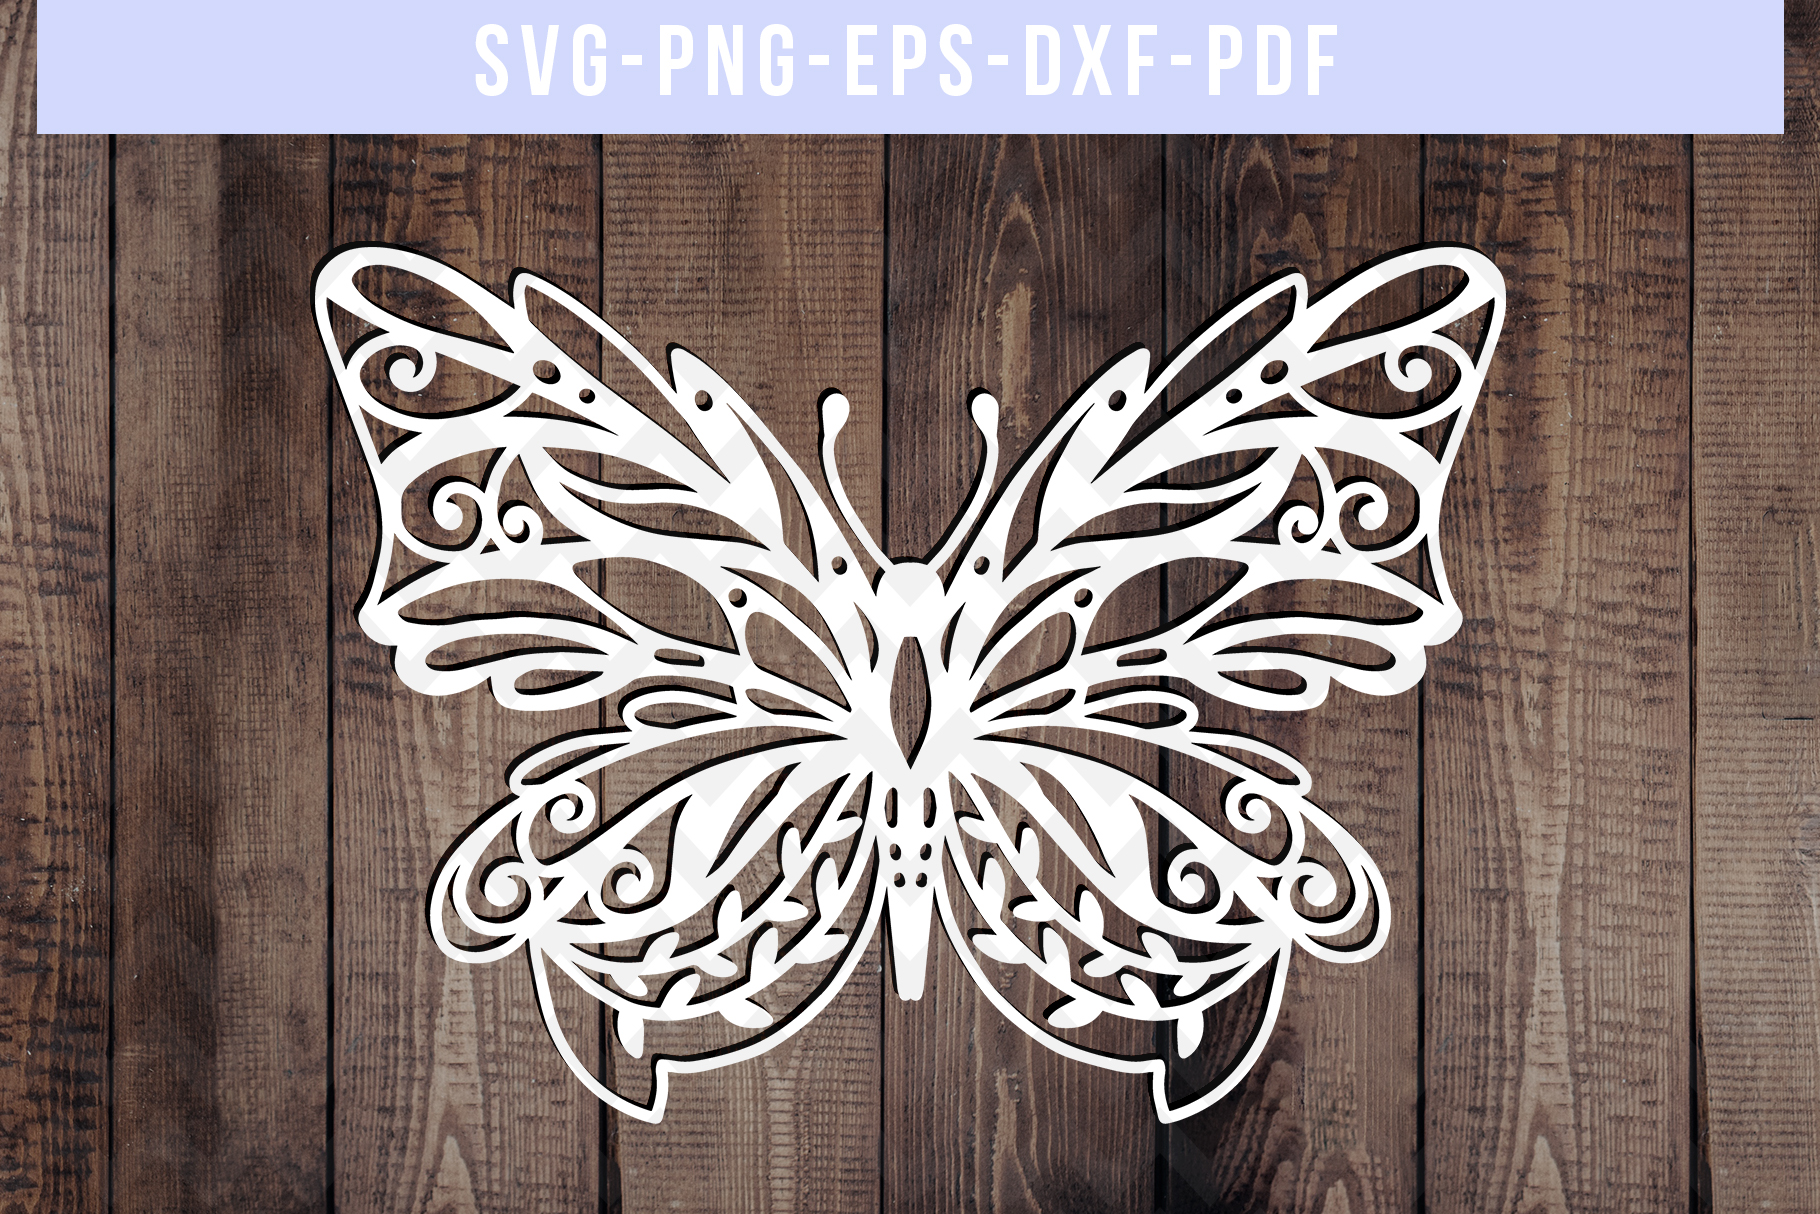 Bundle Of 9 Butterfly Papercut Templates, Paper Art DXF PDF example image 6